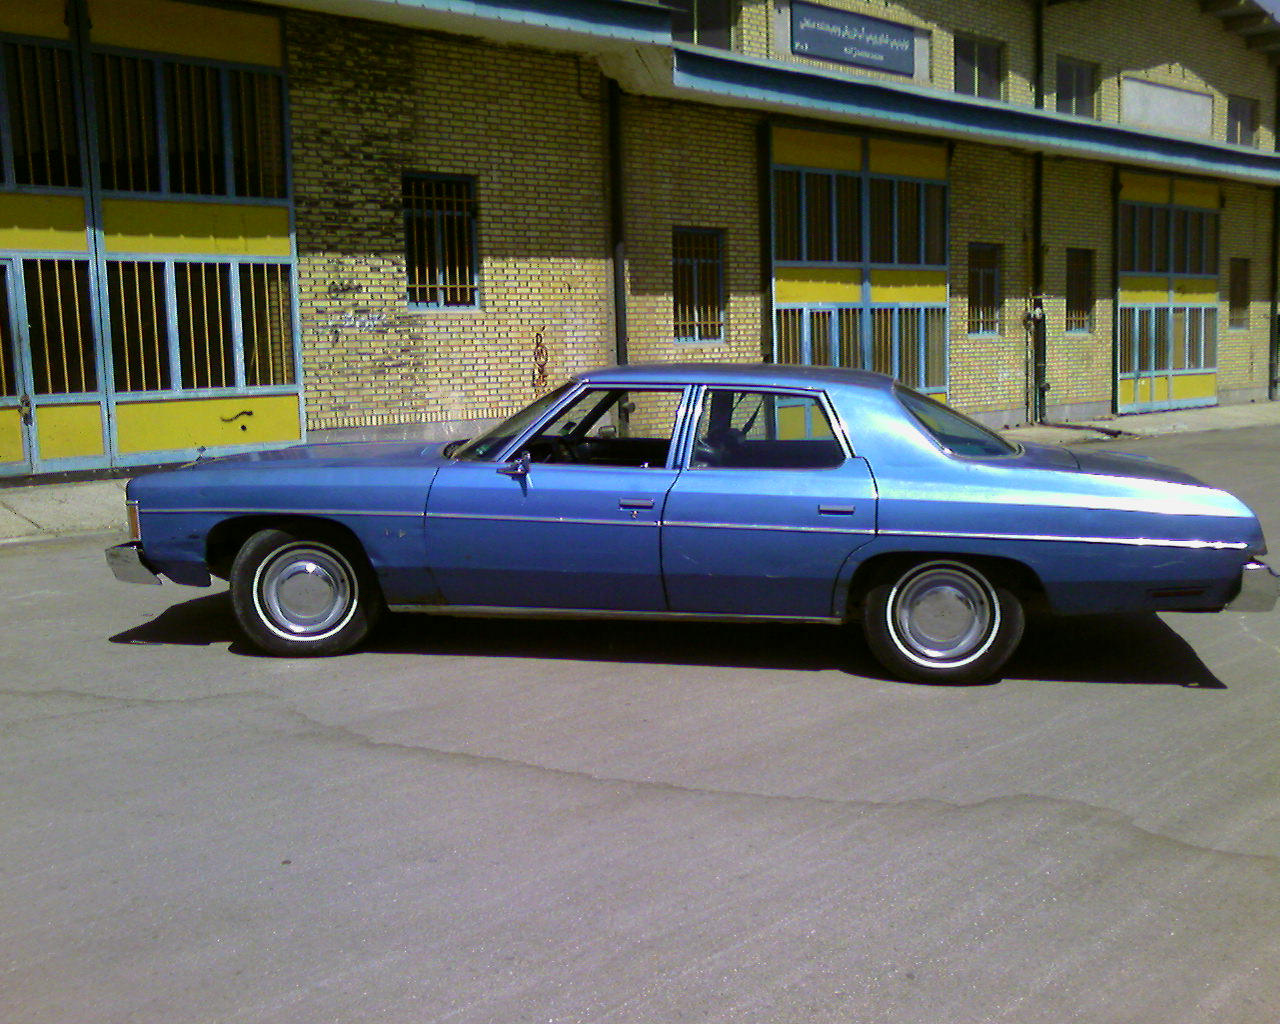 Description 1974 Chevrolet Impala-Right Side.jpg